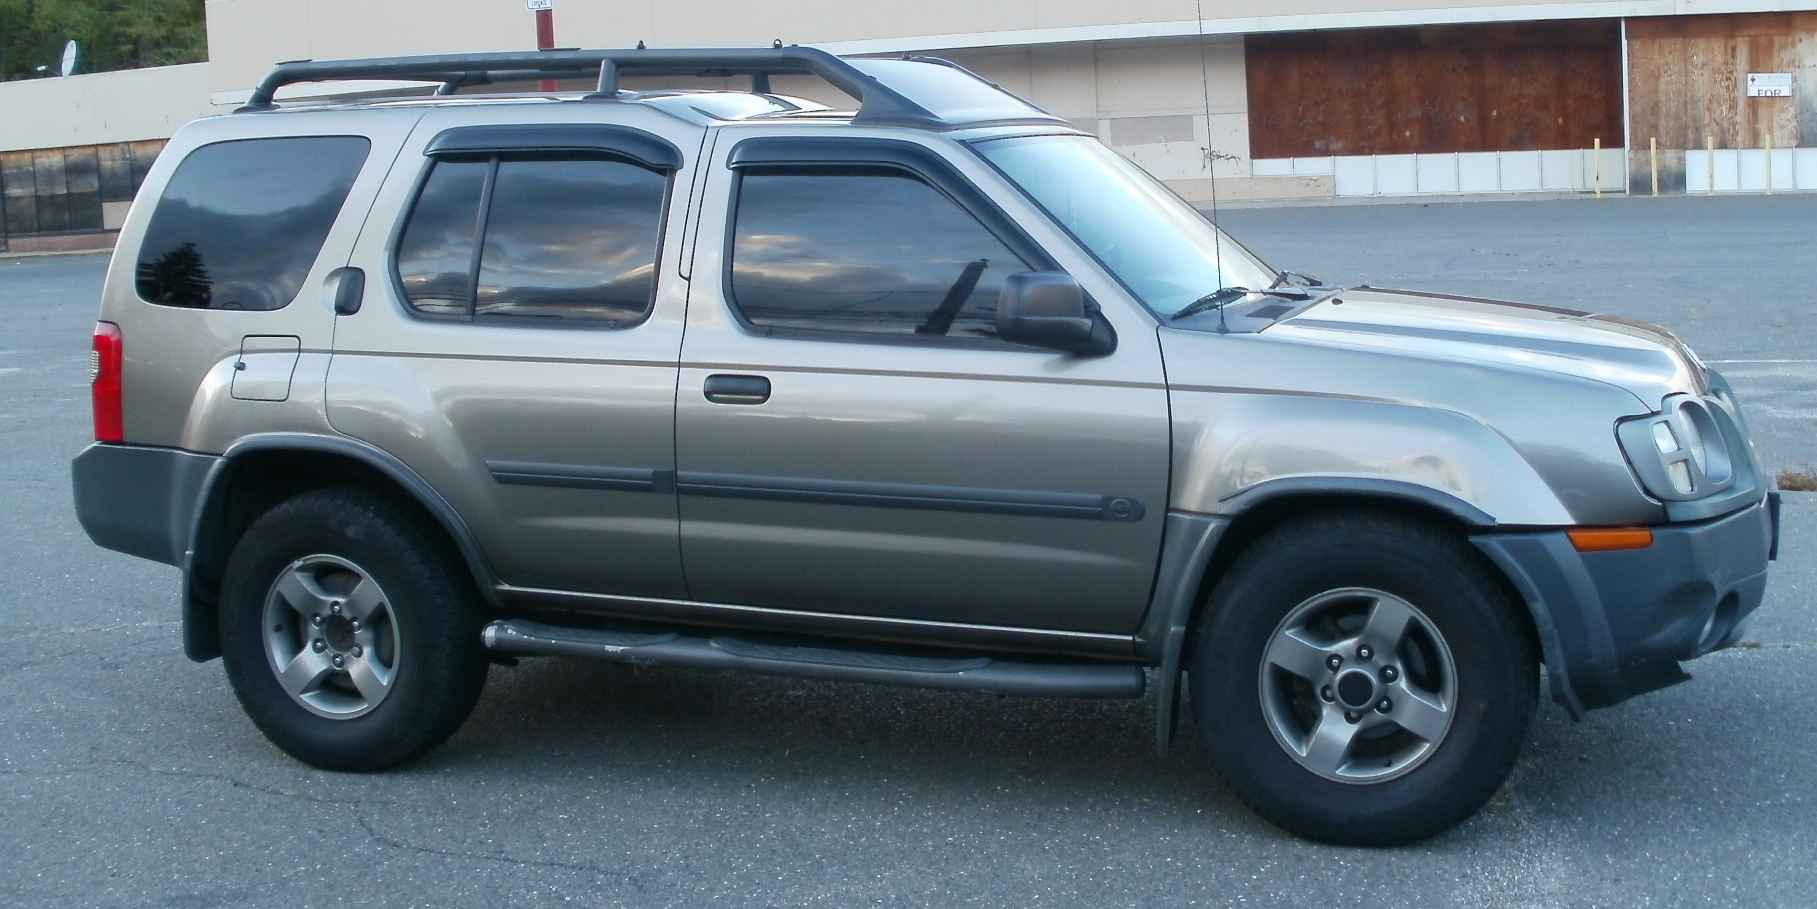 2003 Nissan Xterra Information And Photos Zombiedrive